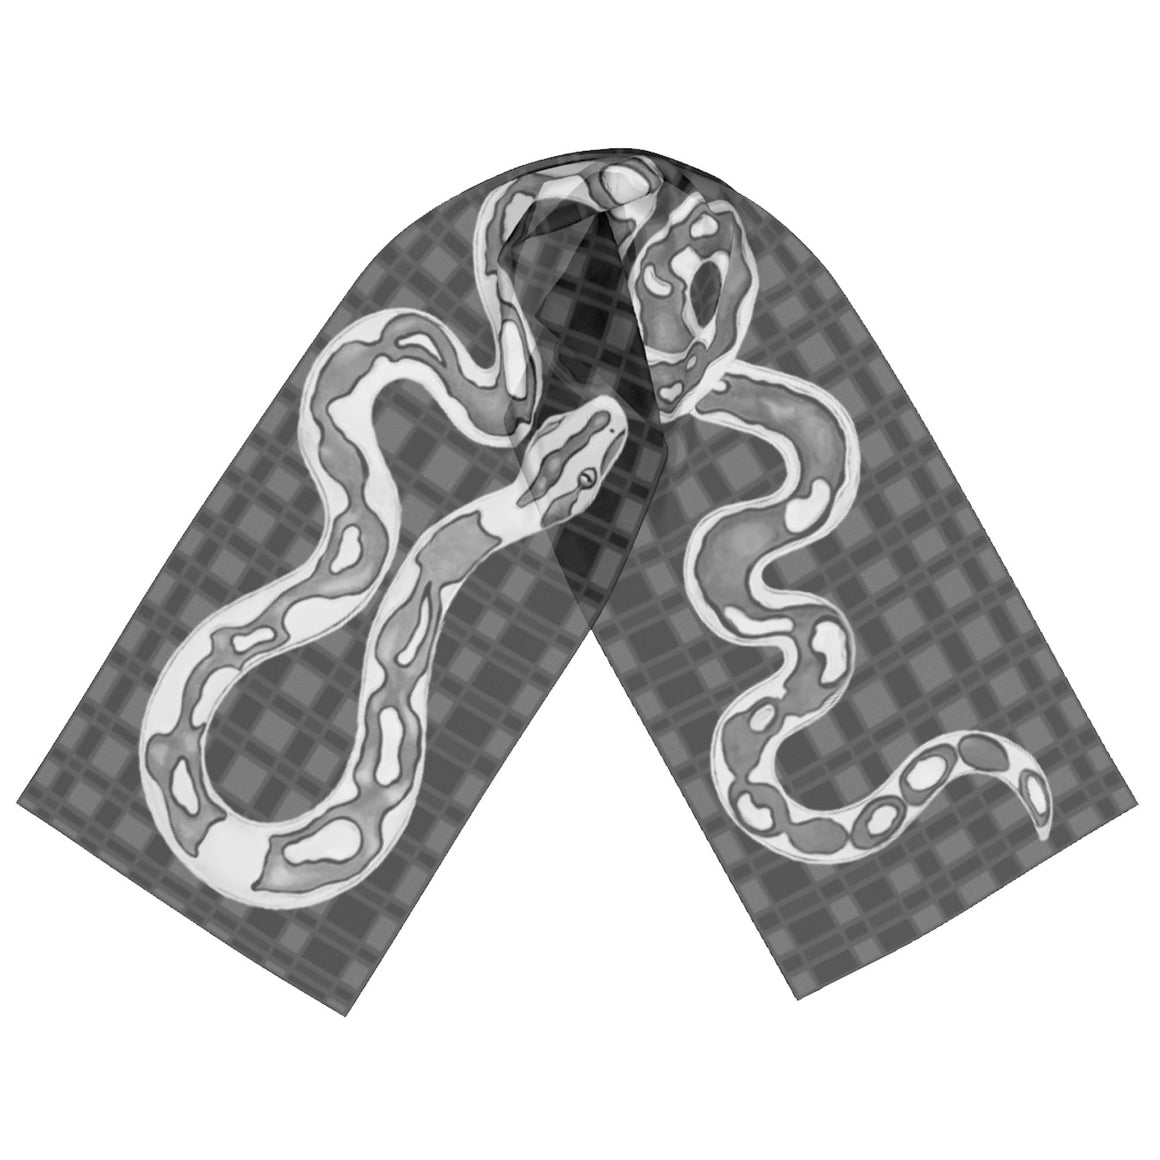 Copy of Checkers the Snake Scarf Black and White